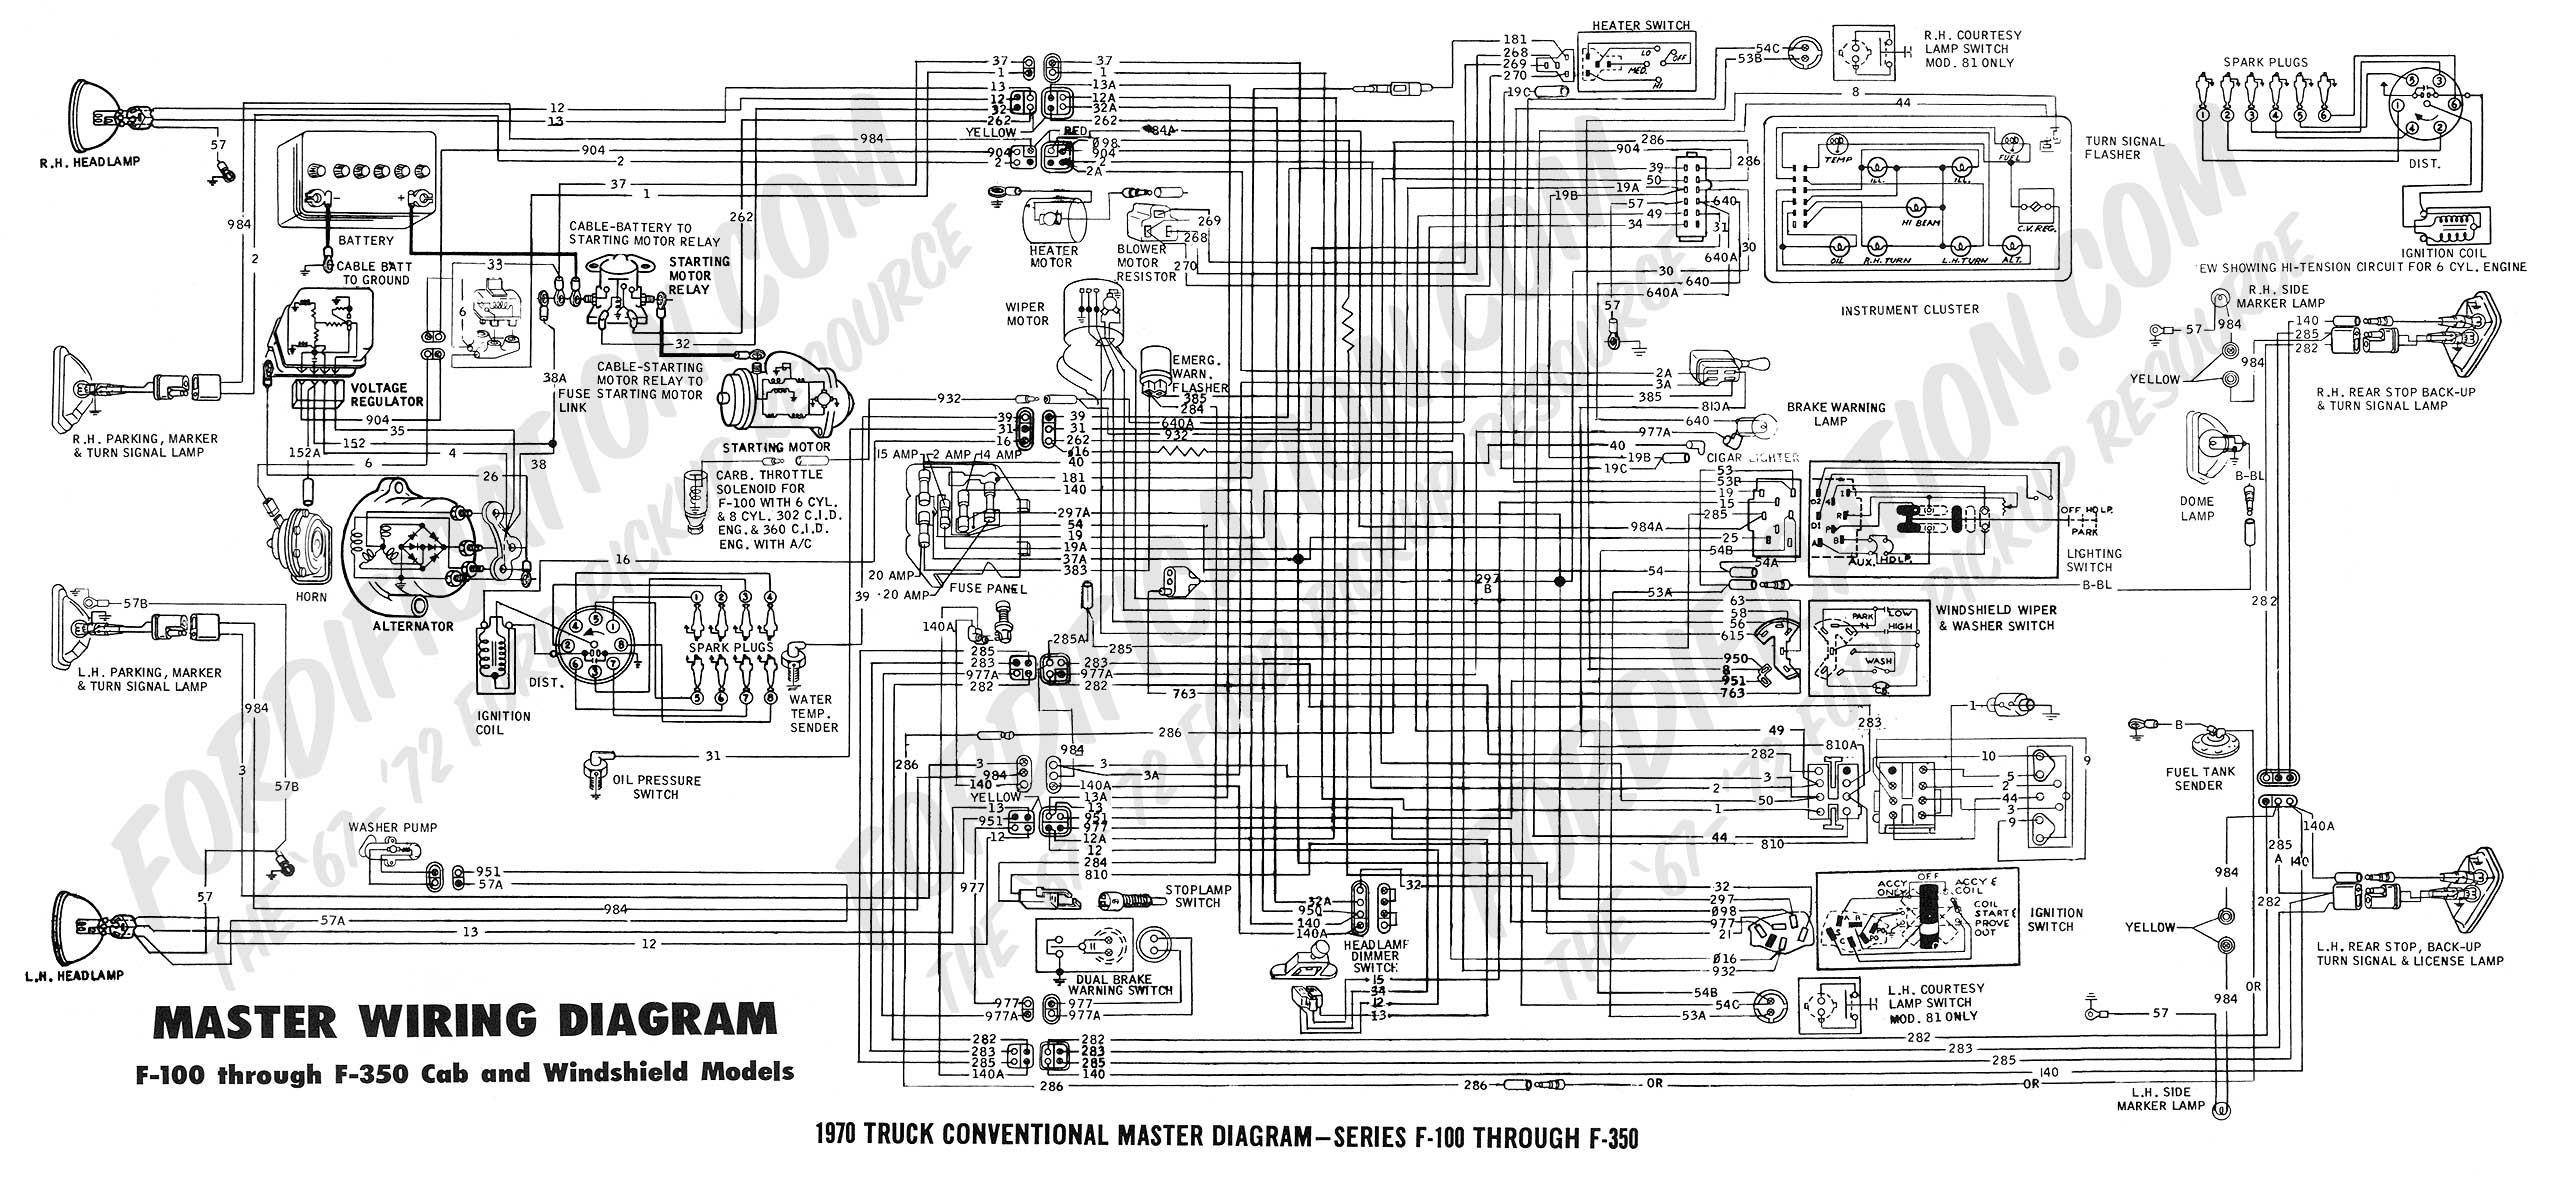 wire schematics trailer wiring diagram wire circuit truck to trailer on magic chef refrigerator wiring schematic, magic chef stove control panel, oven wiring diagram, magic chef stove parts, kenmore dryer wiring diagram, magic wire diagrams, whirlpool gas dryer wiring diagram, magic chef stove plug, magic chef oven schematics, magic chef oven parts, magic chef electric stove, magic chef gas cooktop parts, magic chef stove manual, magic chef stove cover, magic chef gas stove diagram, magic chef electric cooker, magic chef stove regulator, magic chef stove model number location, magic chef stove timer,